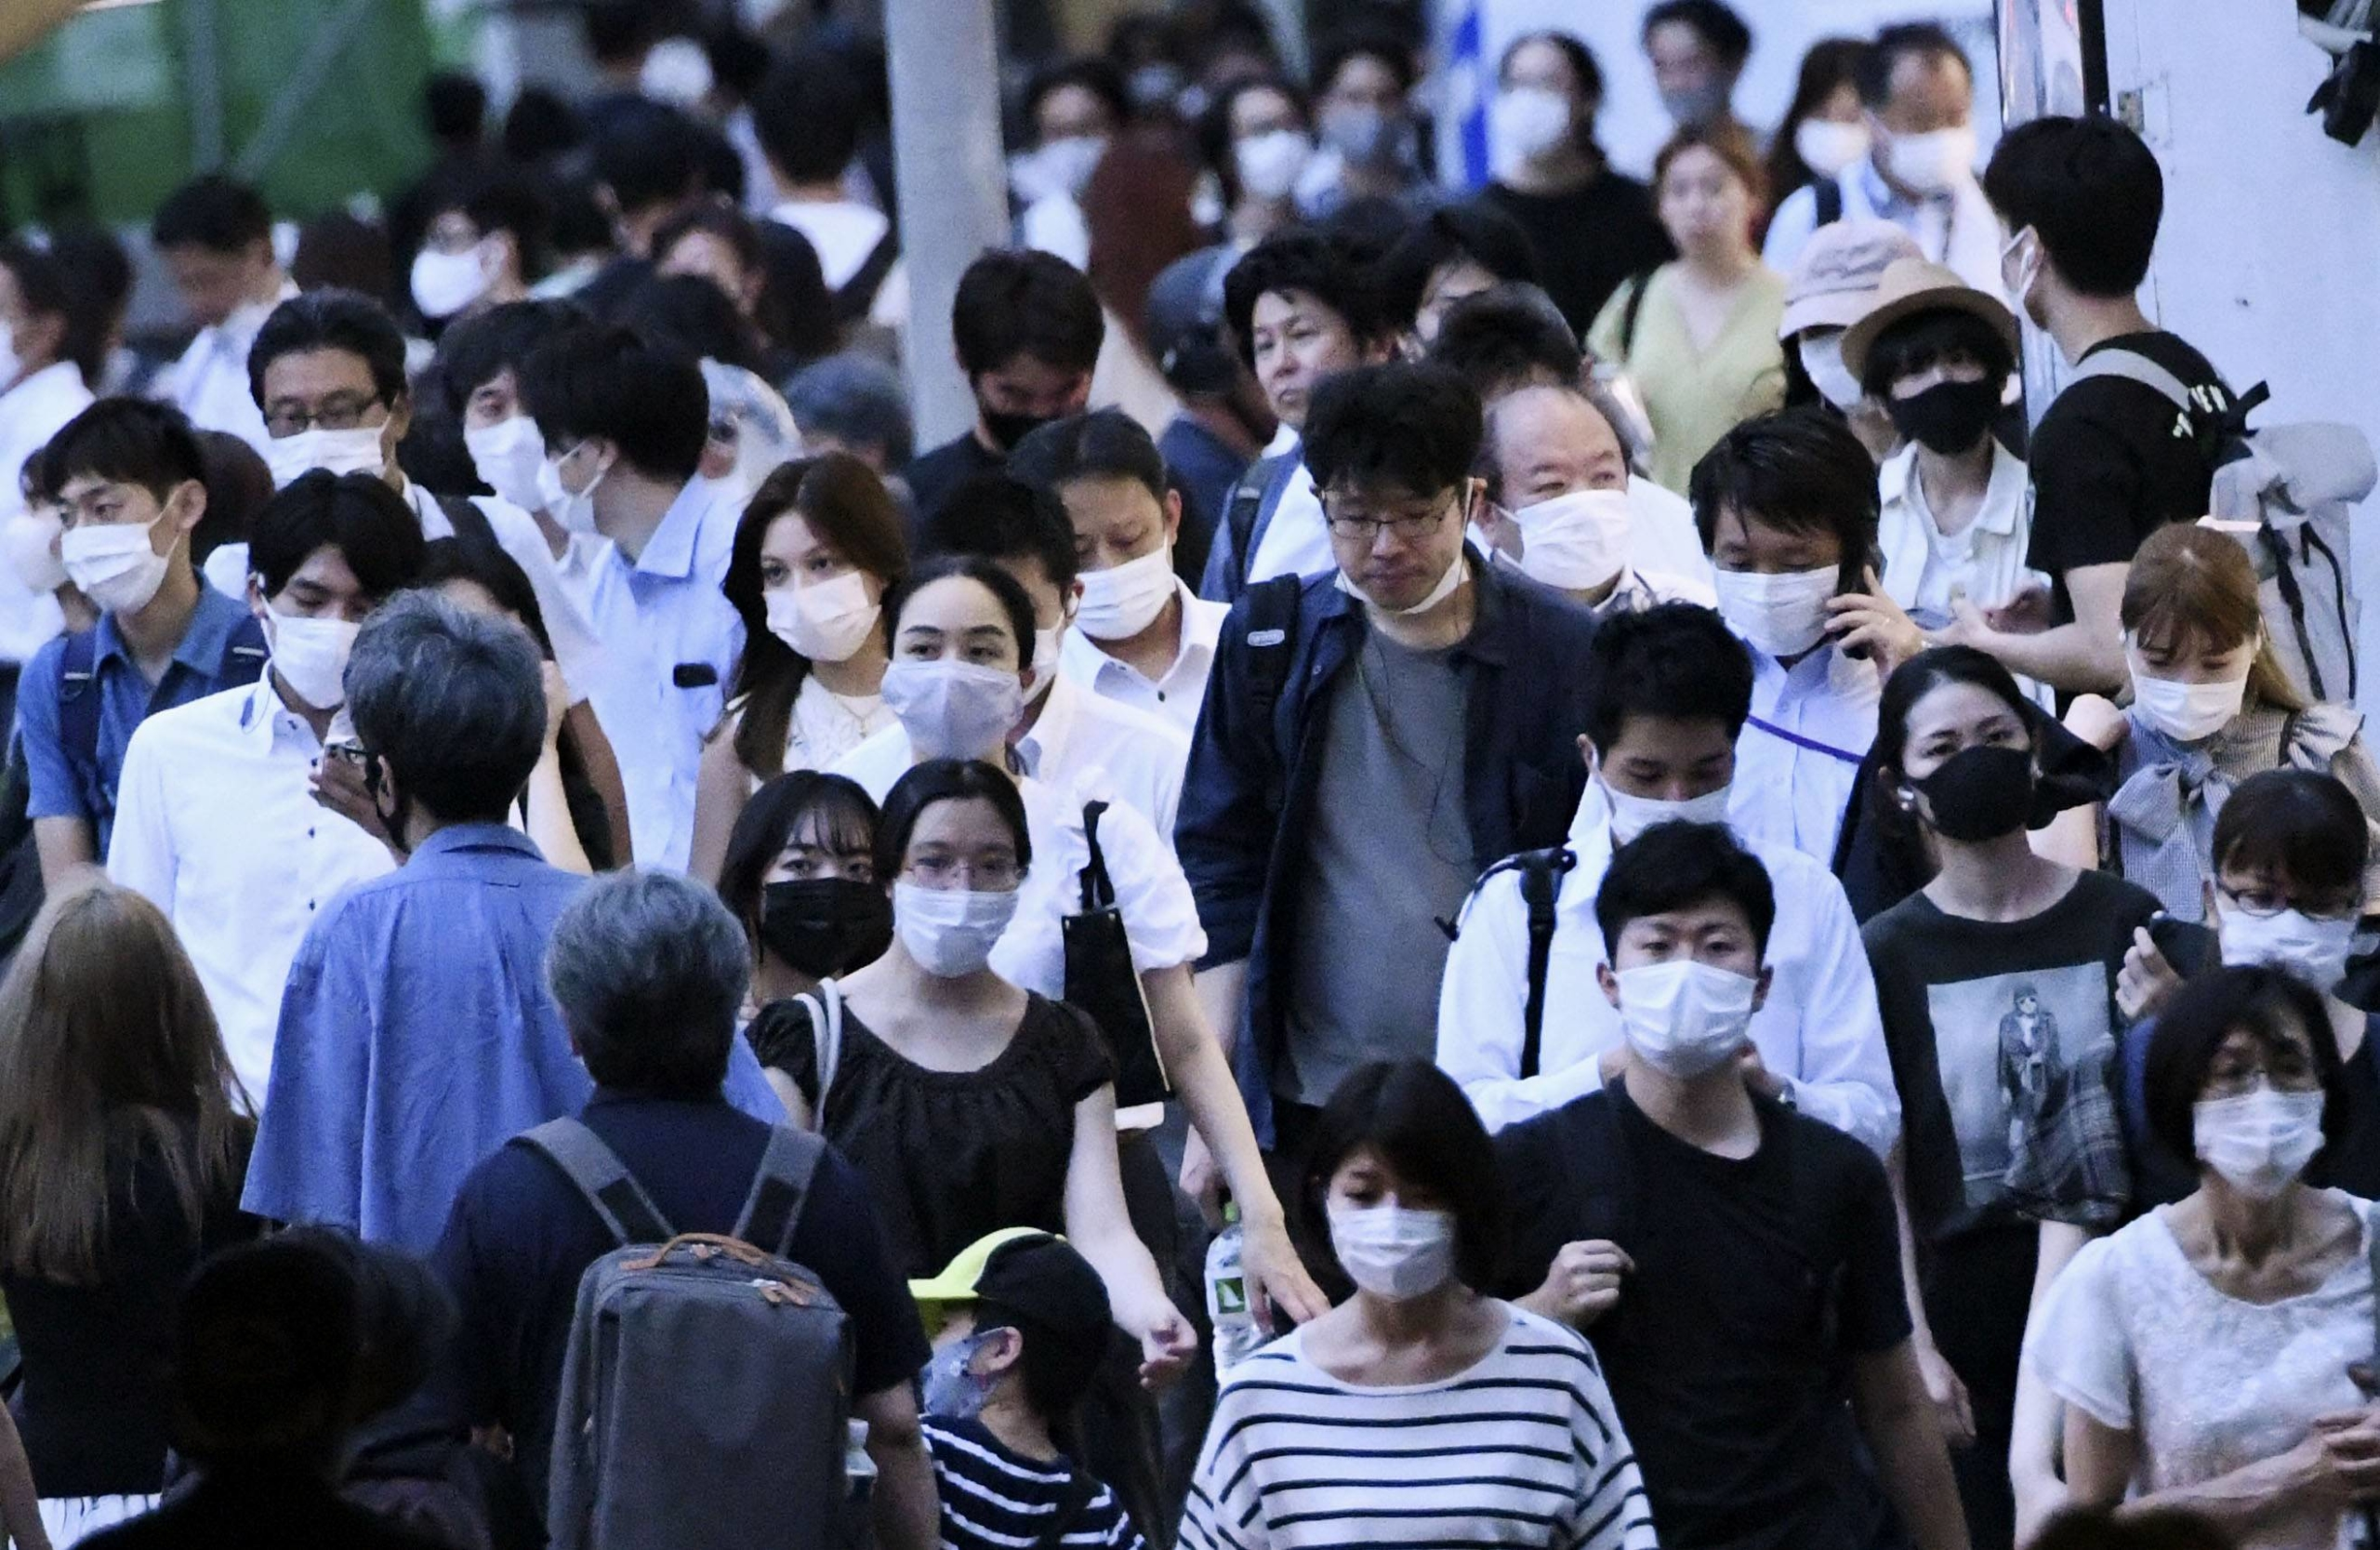 Tokyo reported 2,612 new cases of COVID-19 on Tuesday. | KYODO